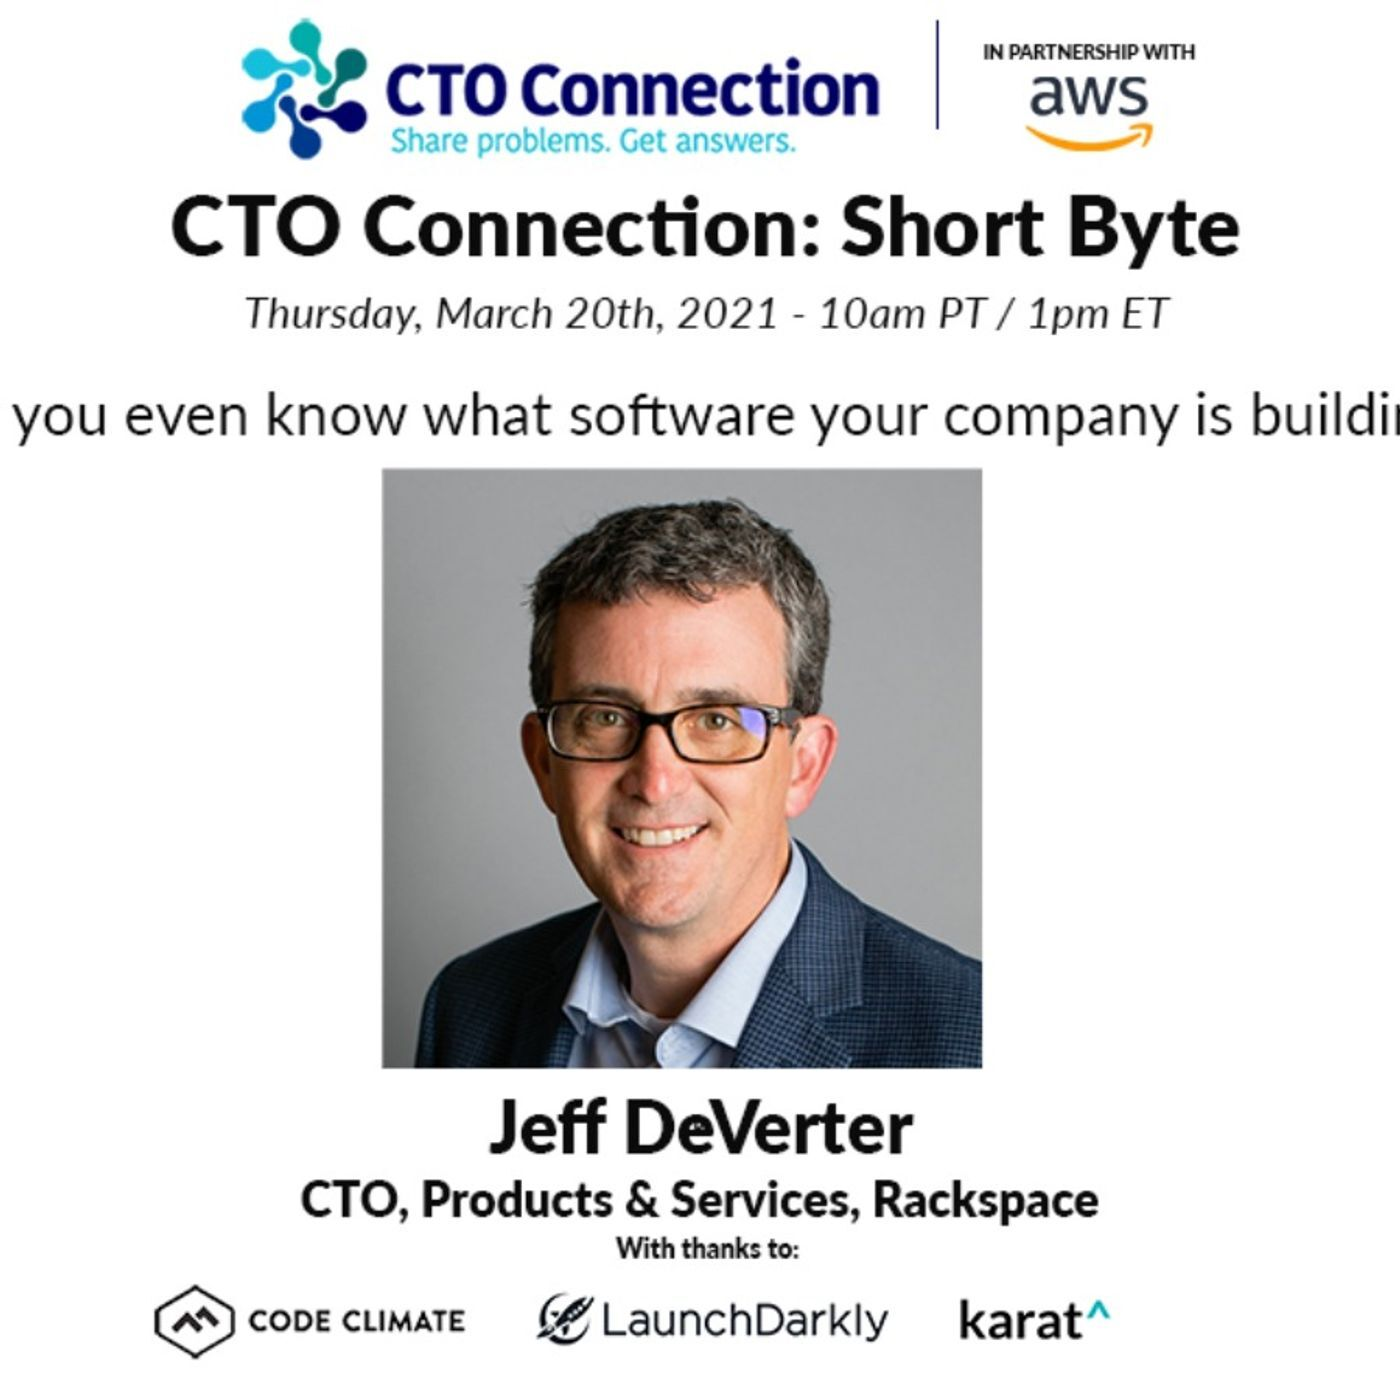 Short Byte: Jeff DeVerter - Do you even know what software your company is developing?